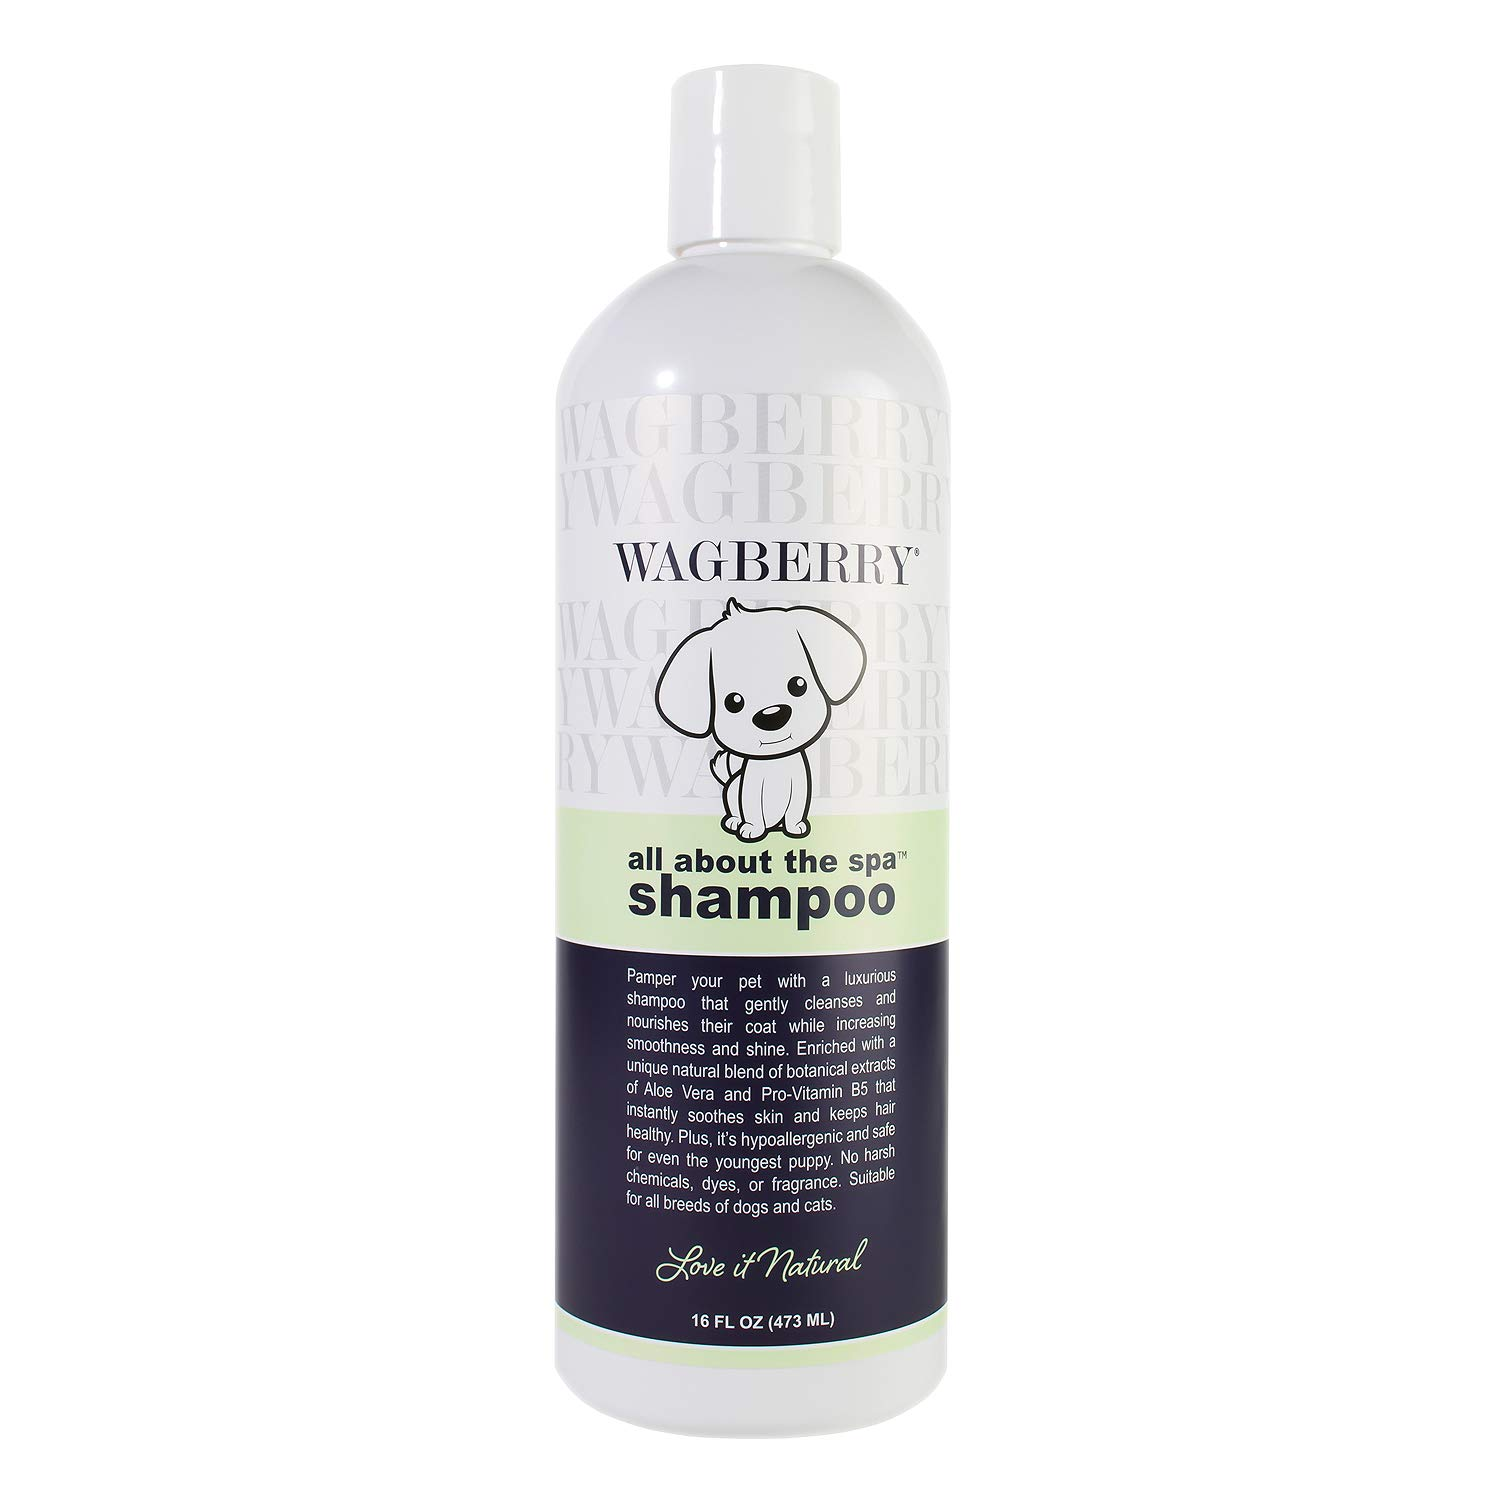 Wagberry All About The Spa Shampoo - Dog Shampoo And Conditioner, Wash For All Pets Puppy & Cats With Aloe Vera For Relieving Dry Itchy Skin - LOVE IT NATURAL, Made In USA, 16oz